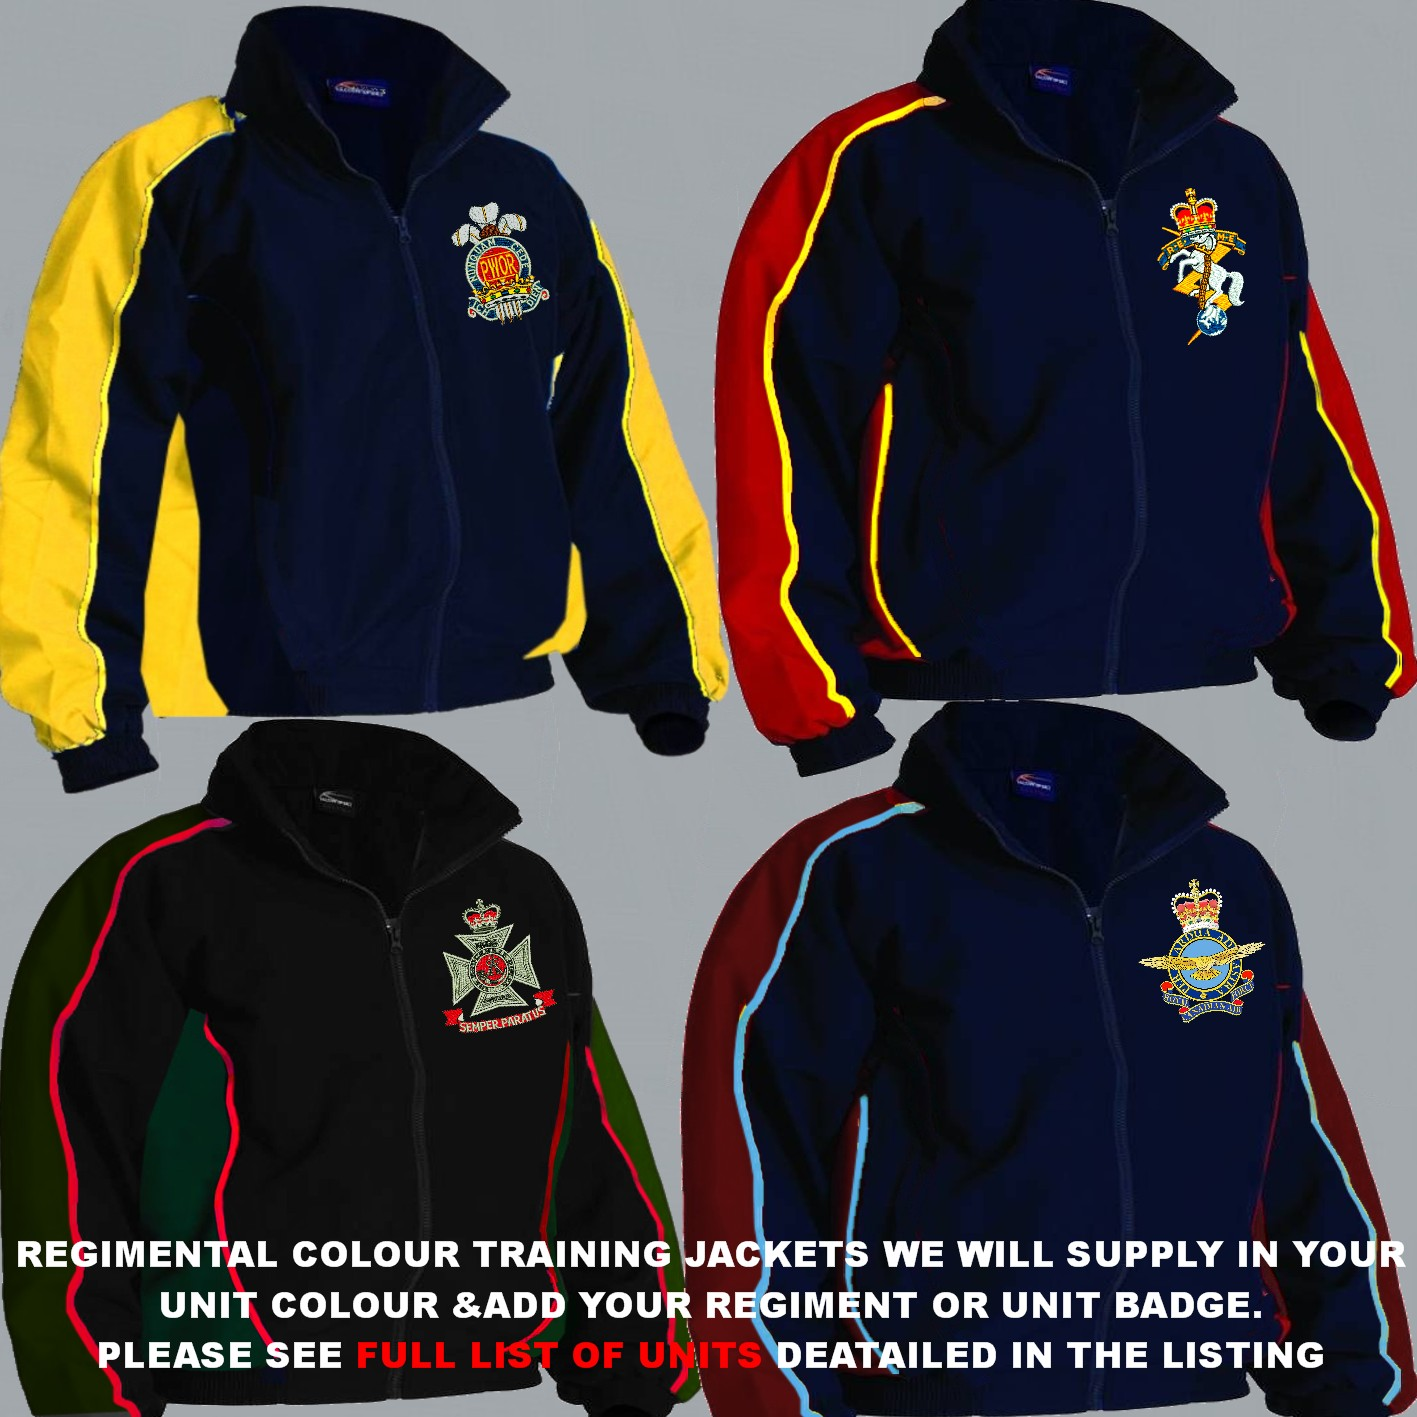 Canadian Army 1 A Regimental Colour Training Jackets